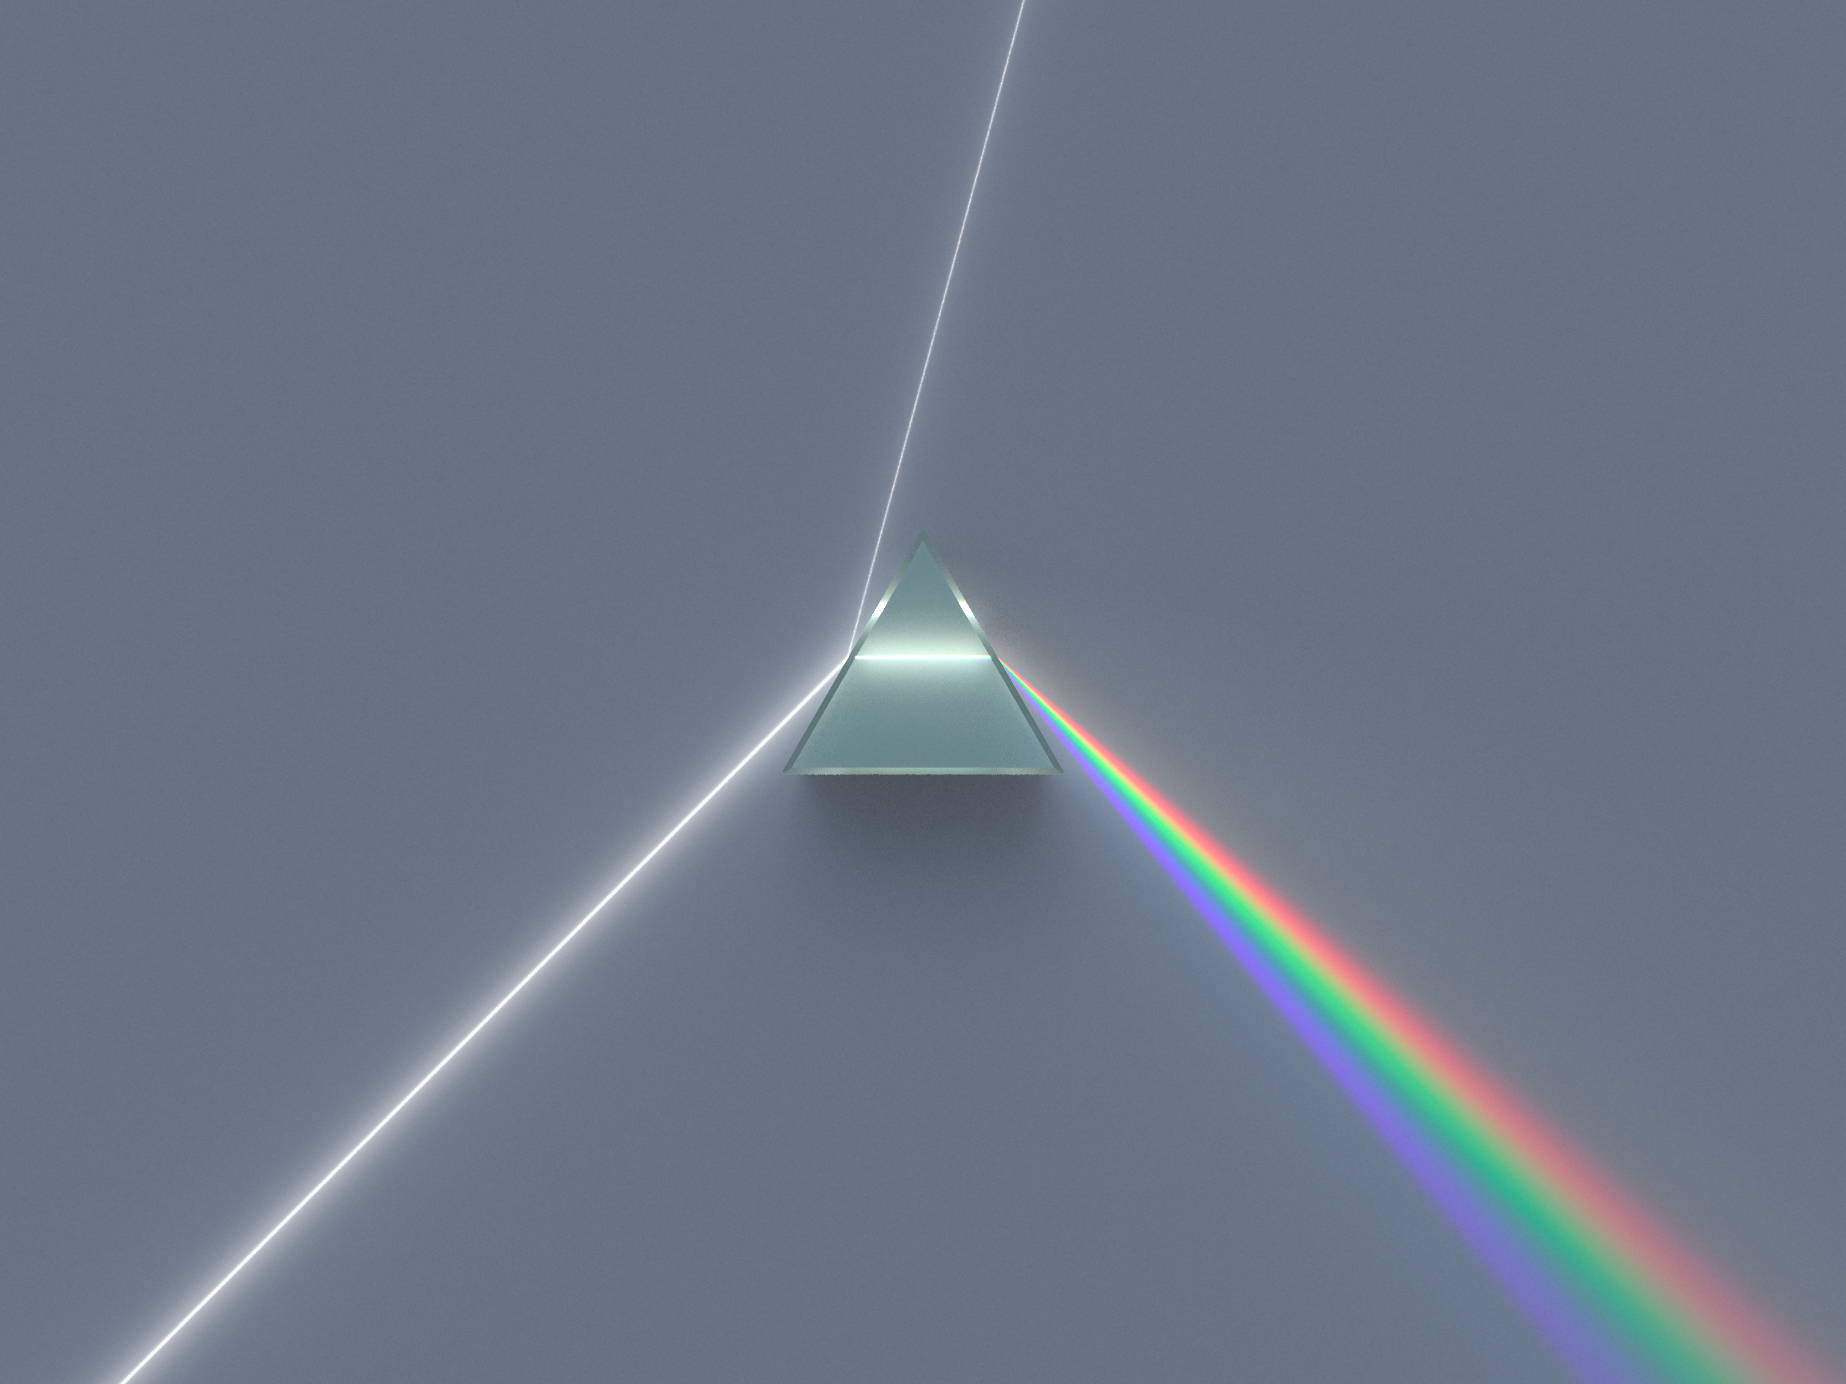 File:Dispersive Prism Illustration by Spigget.jpg - Wikipedia, the ...